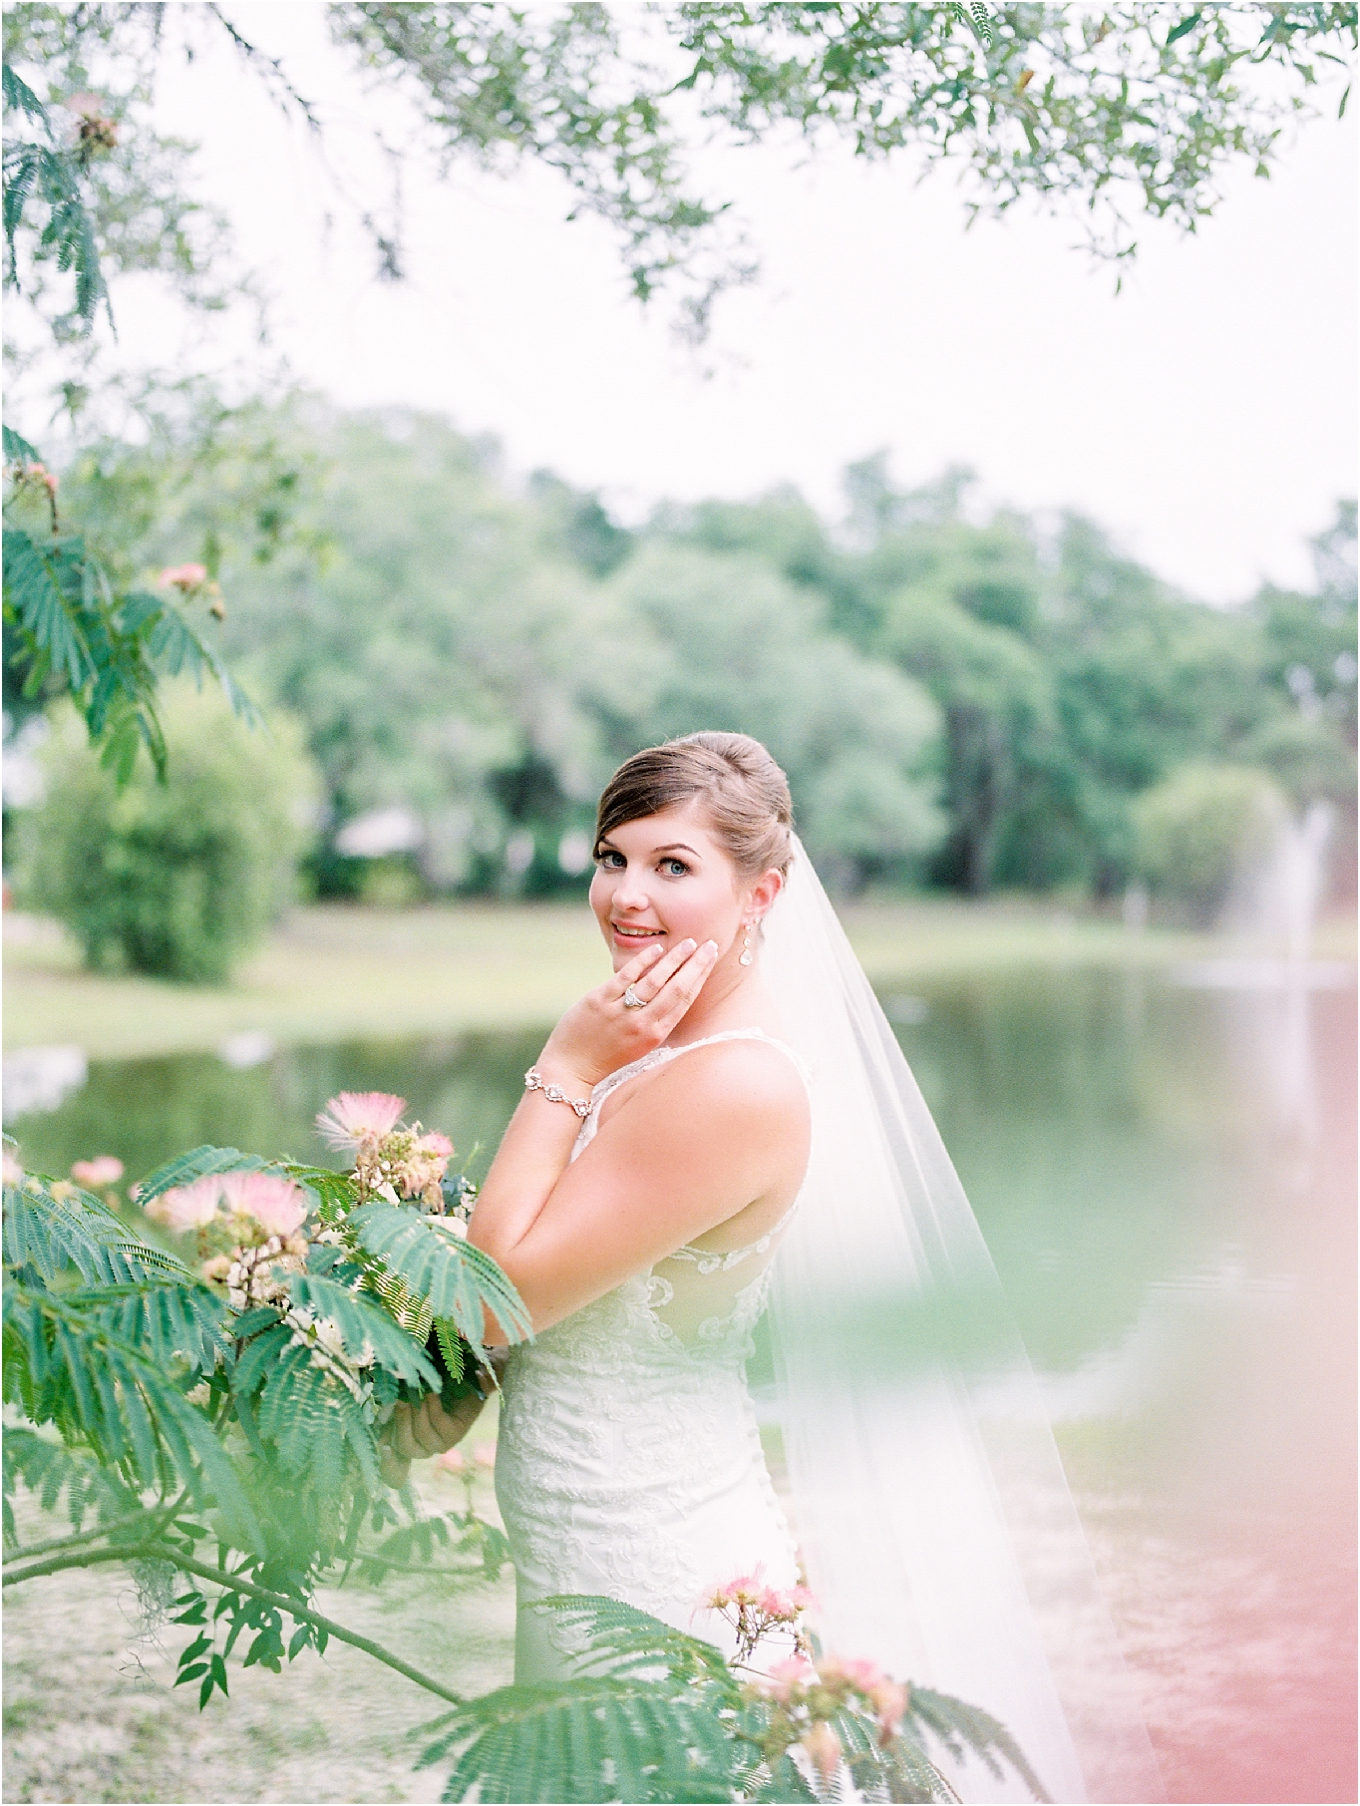 Lisa Silva Photography- Ponte Vedra Beach, St. Augustine and Jacksonville, Florida Fine Art Film Wedding and Boudoir Photography- Elegant Blush and Navy Wedding at Chandler Oaks Barn in St. Augustine, Florida_0026.jpg